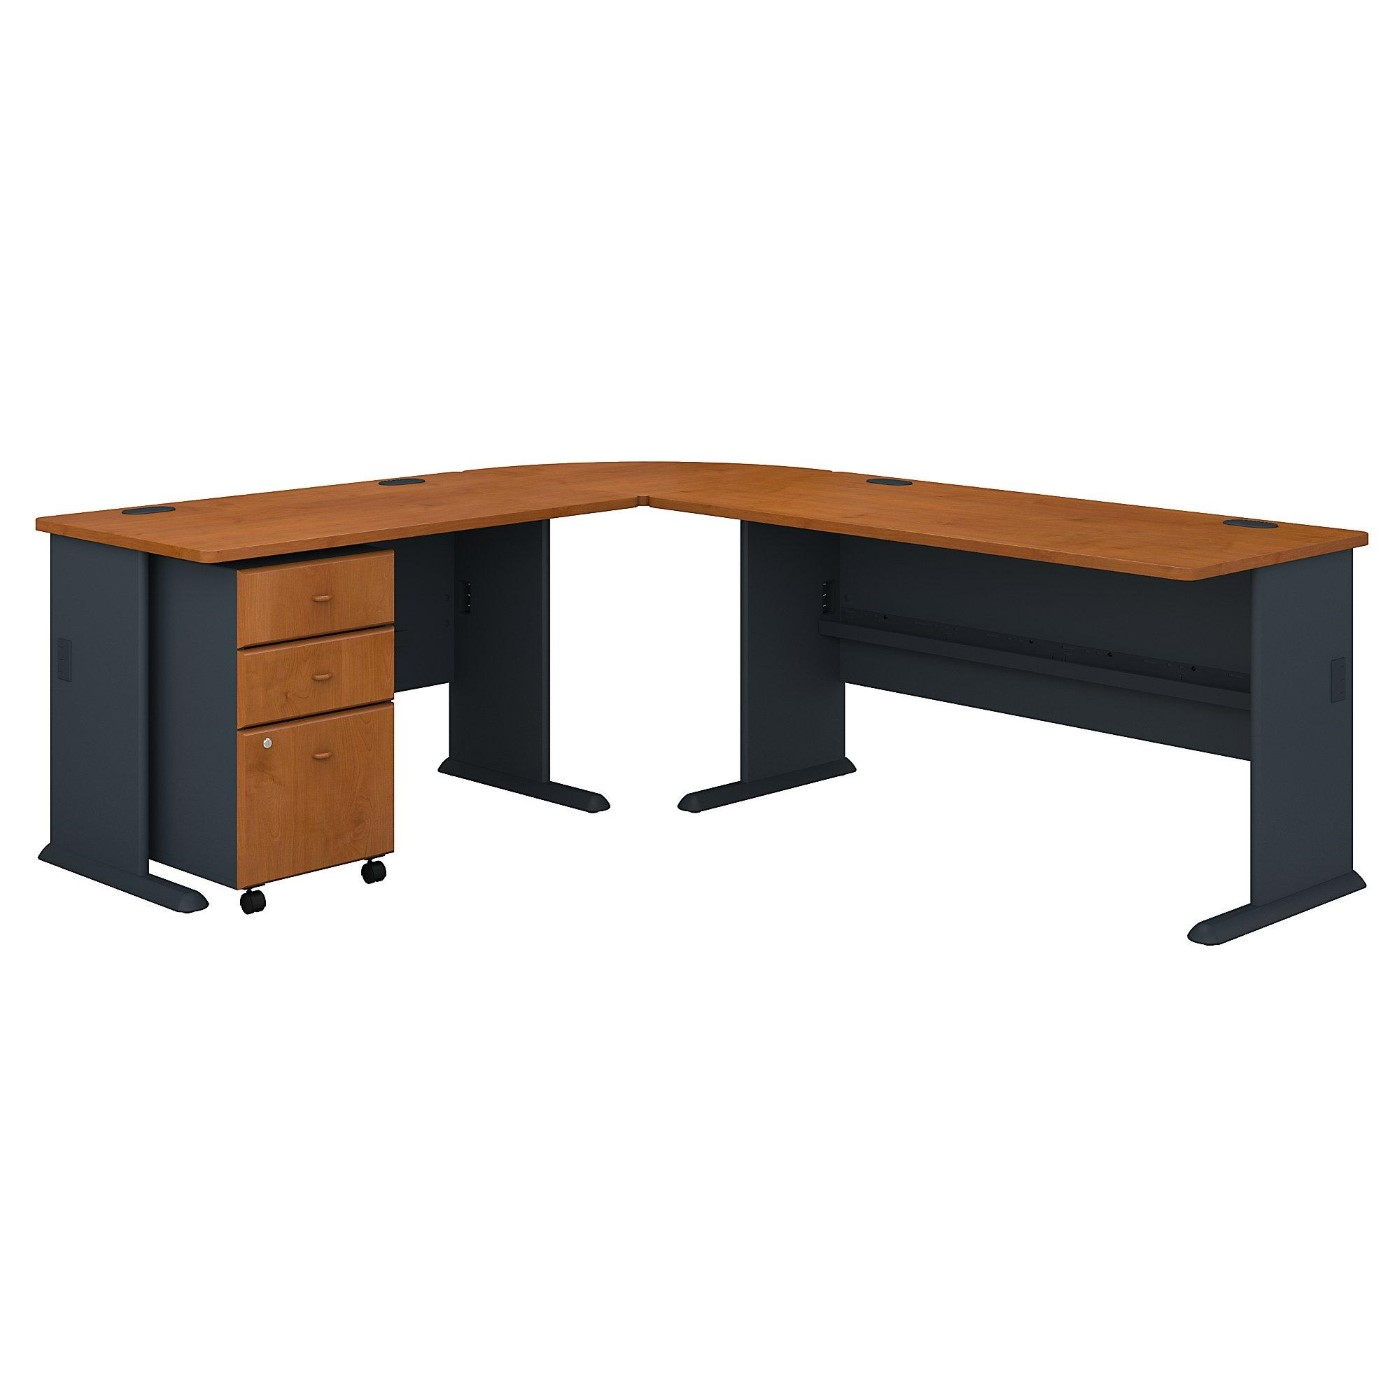 <font color=#c60><b>BUSH BUSINESS FURNITURE SERIES A 99W X 75D L SHAPED DESK WITH MOBILE FILE CABINET. FREE SHIPPING</font></b></font>